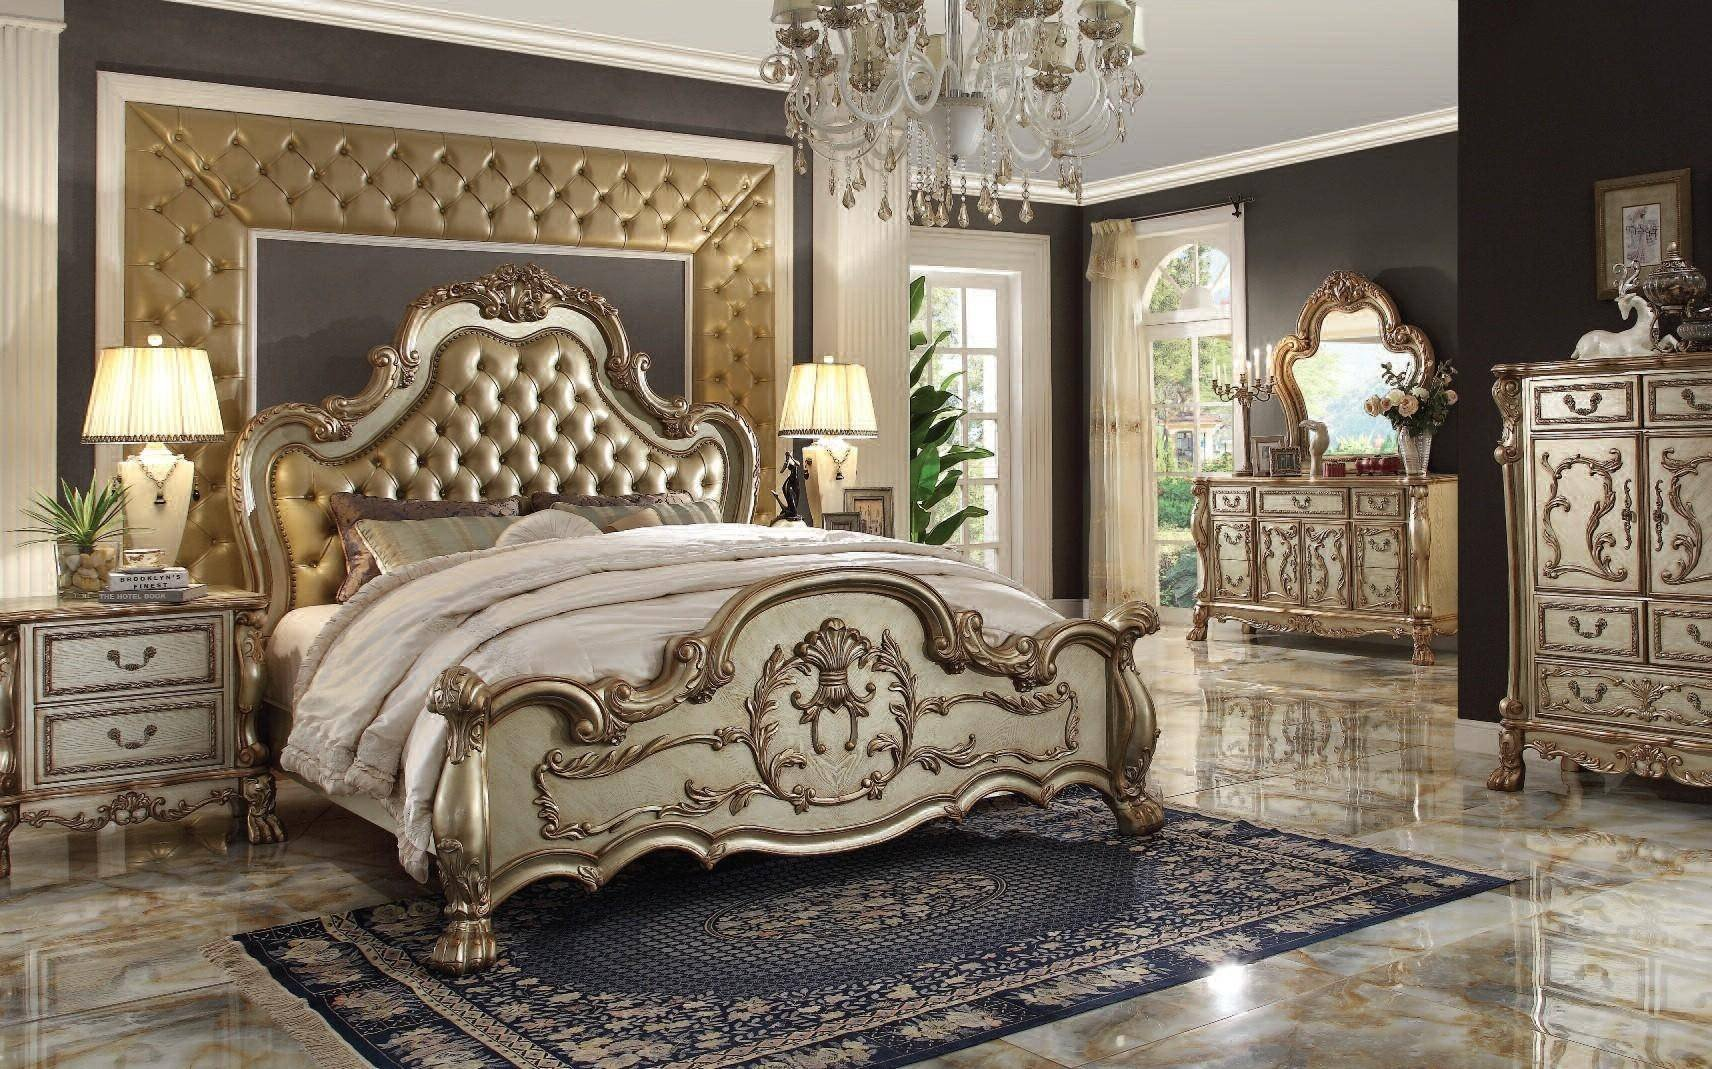 Golden and White Bedroom Lovely Tufted Gold Patina King Bed Dresden Ek Acme Victorian Classic